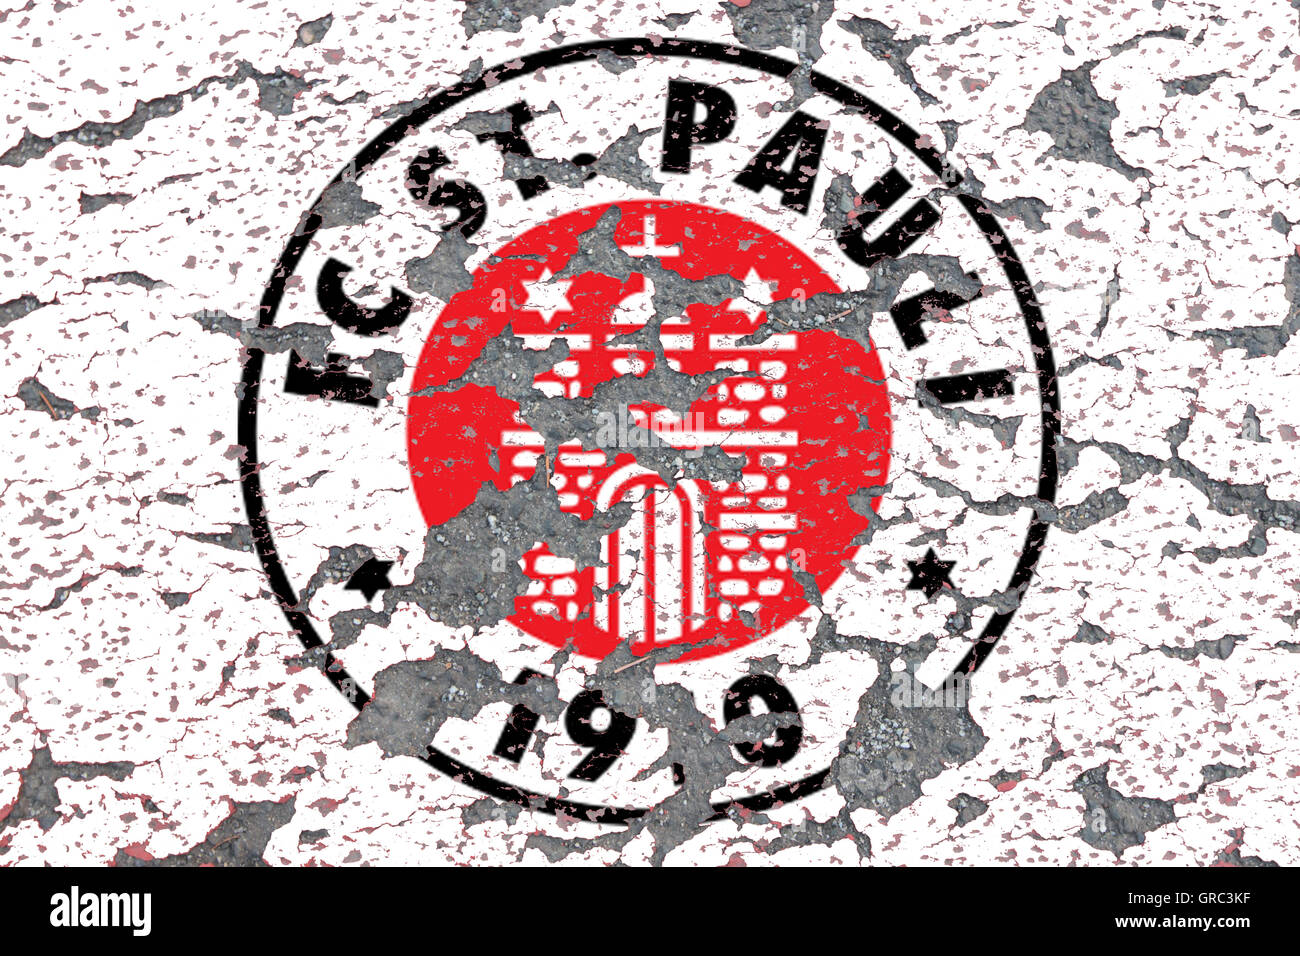 Eroding Logos Of Soccer Club Sankt Pauli Stock Photo